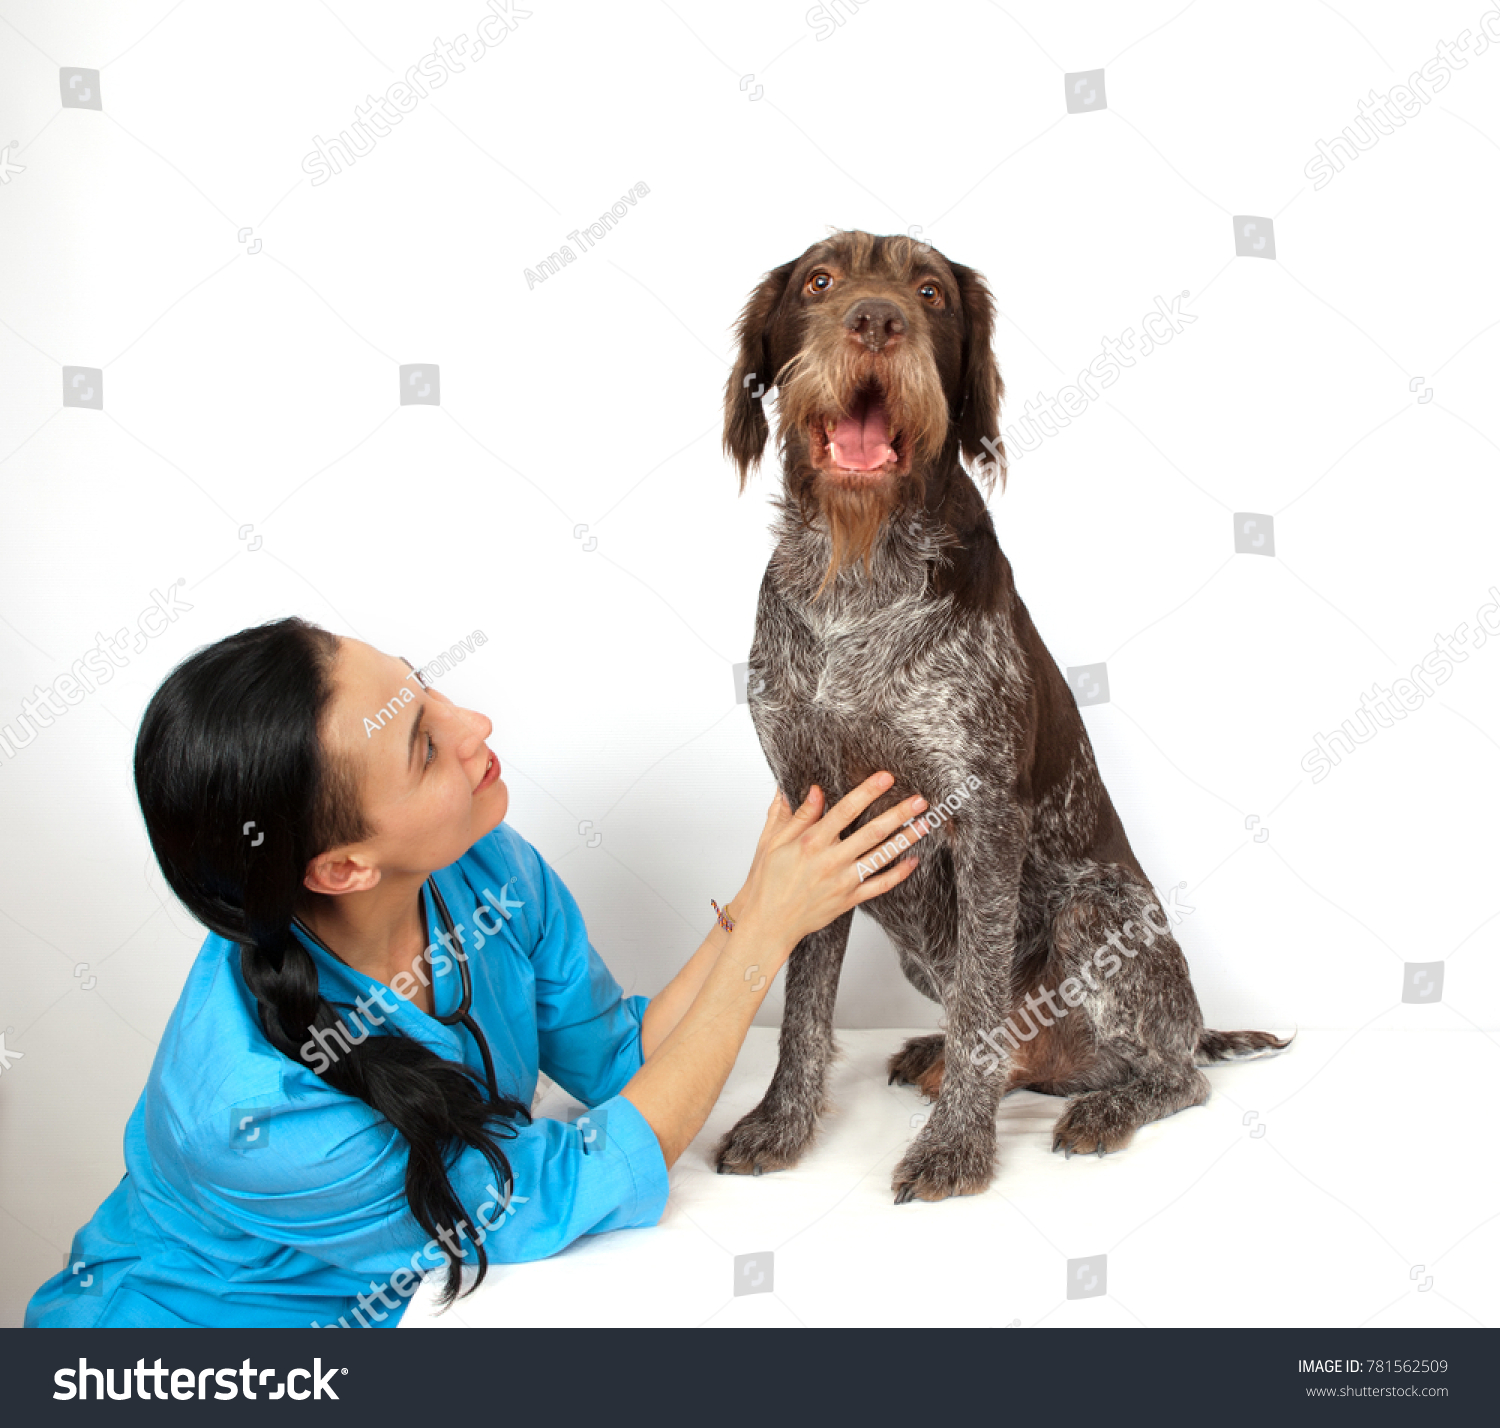 Dog Breed German Wirehaired Pointer Examination Stock Photo ...